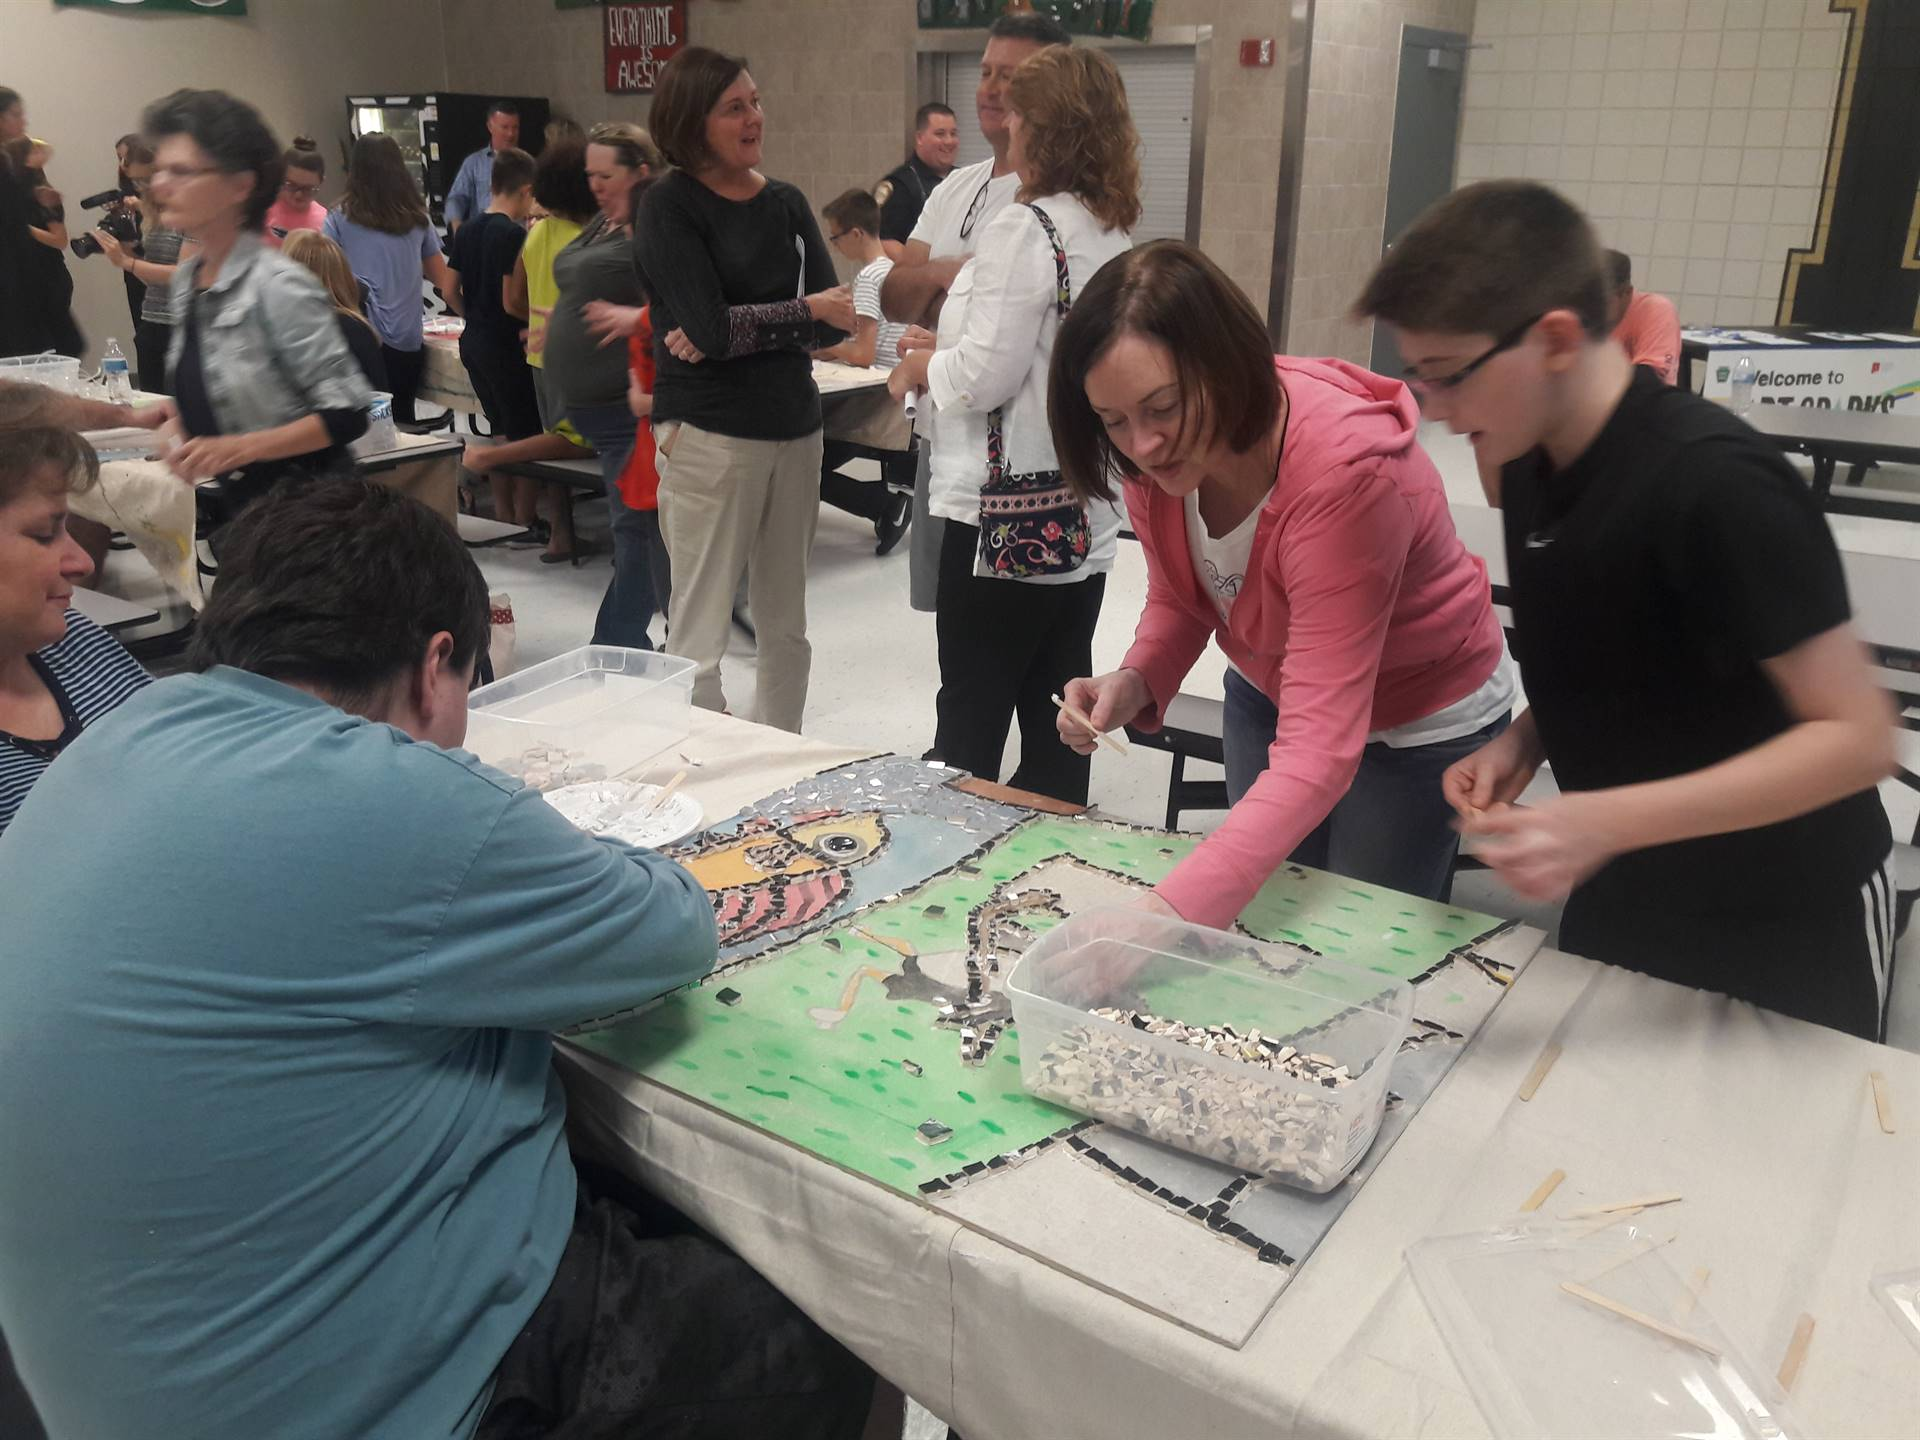 Community Event Night - students, family and community members fill in the Mosaic with colored tile